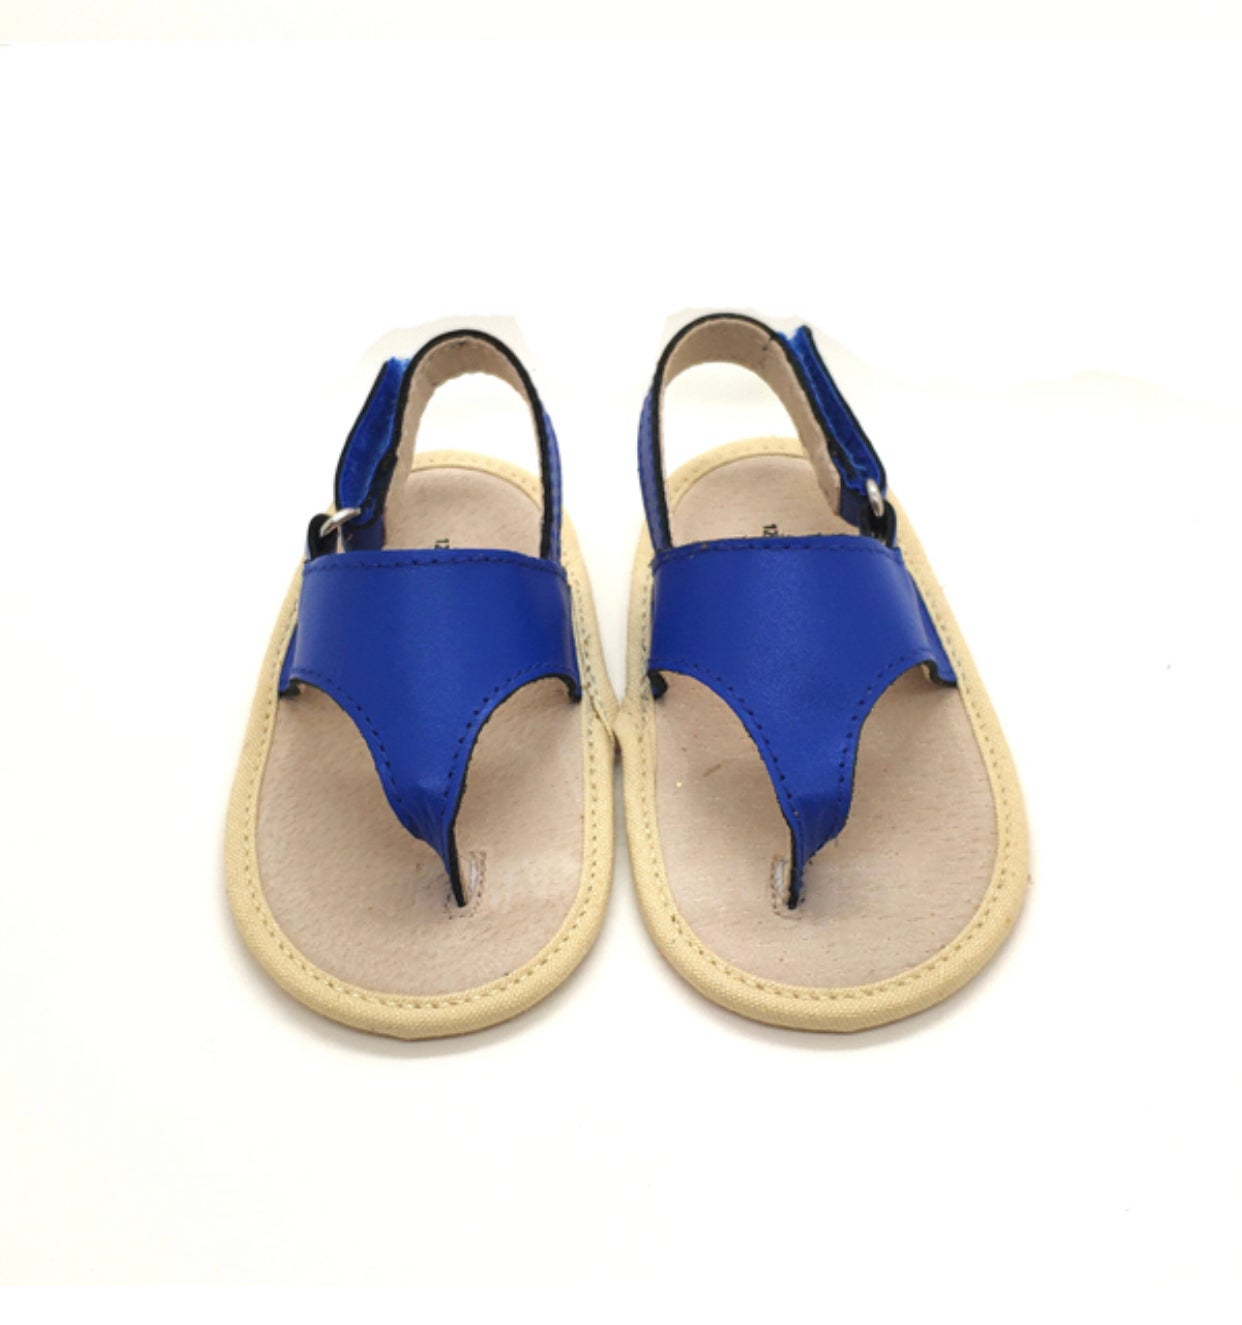 Image of Bella & Ollie Luxe Leather Sandals